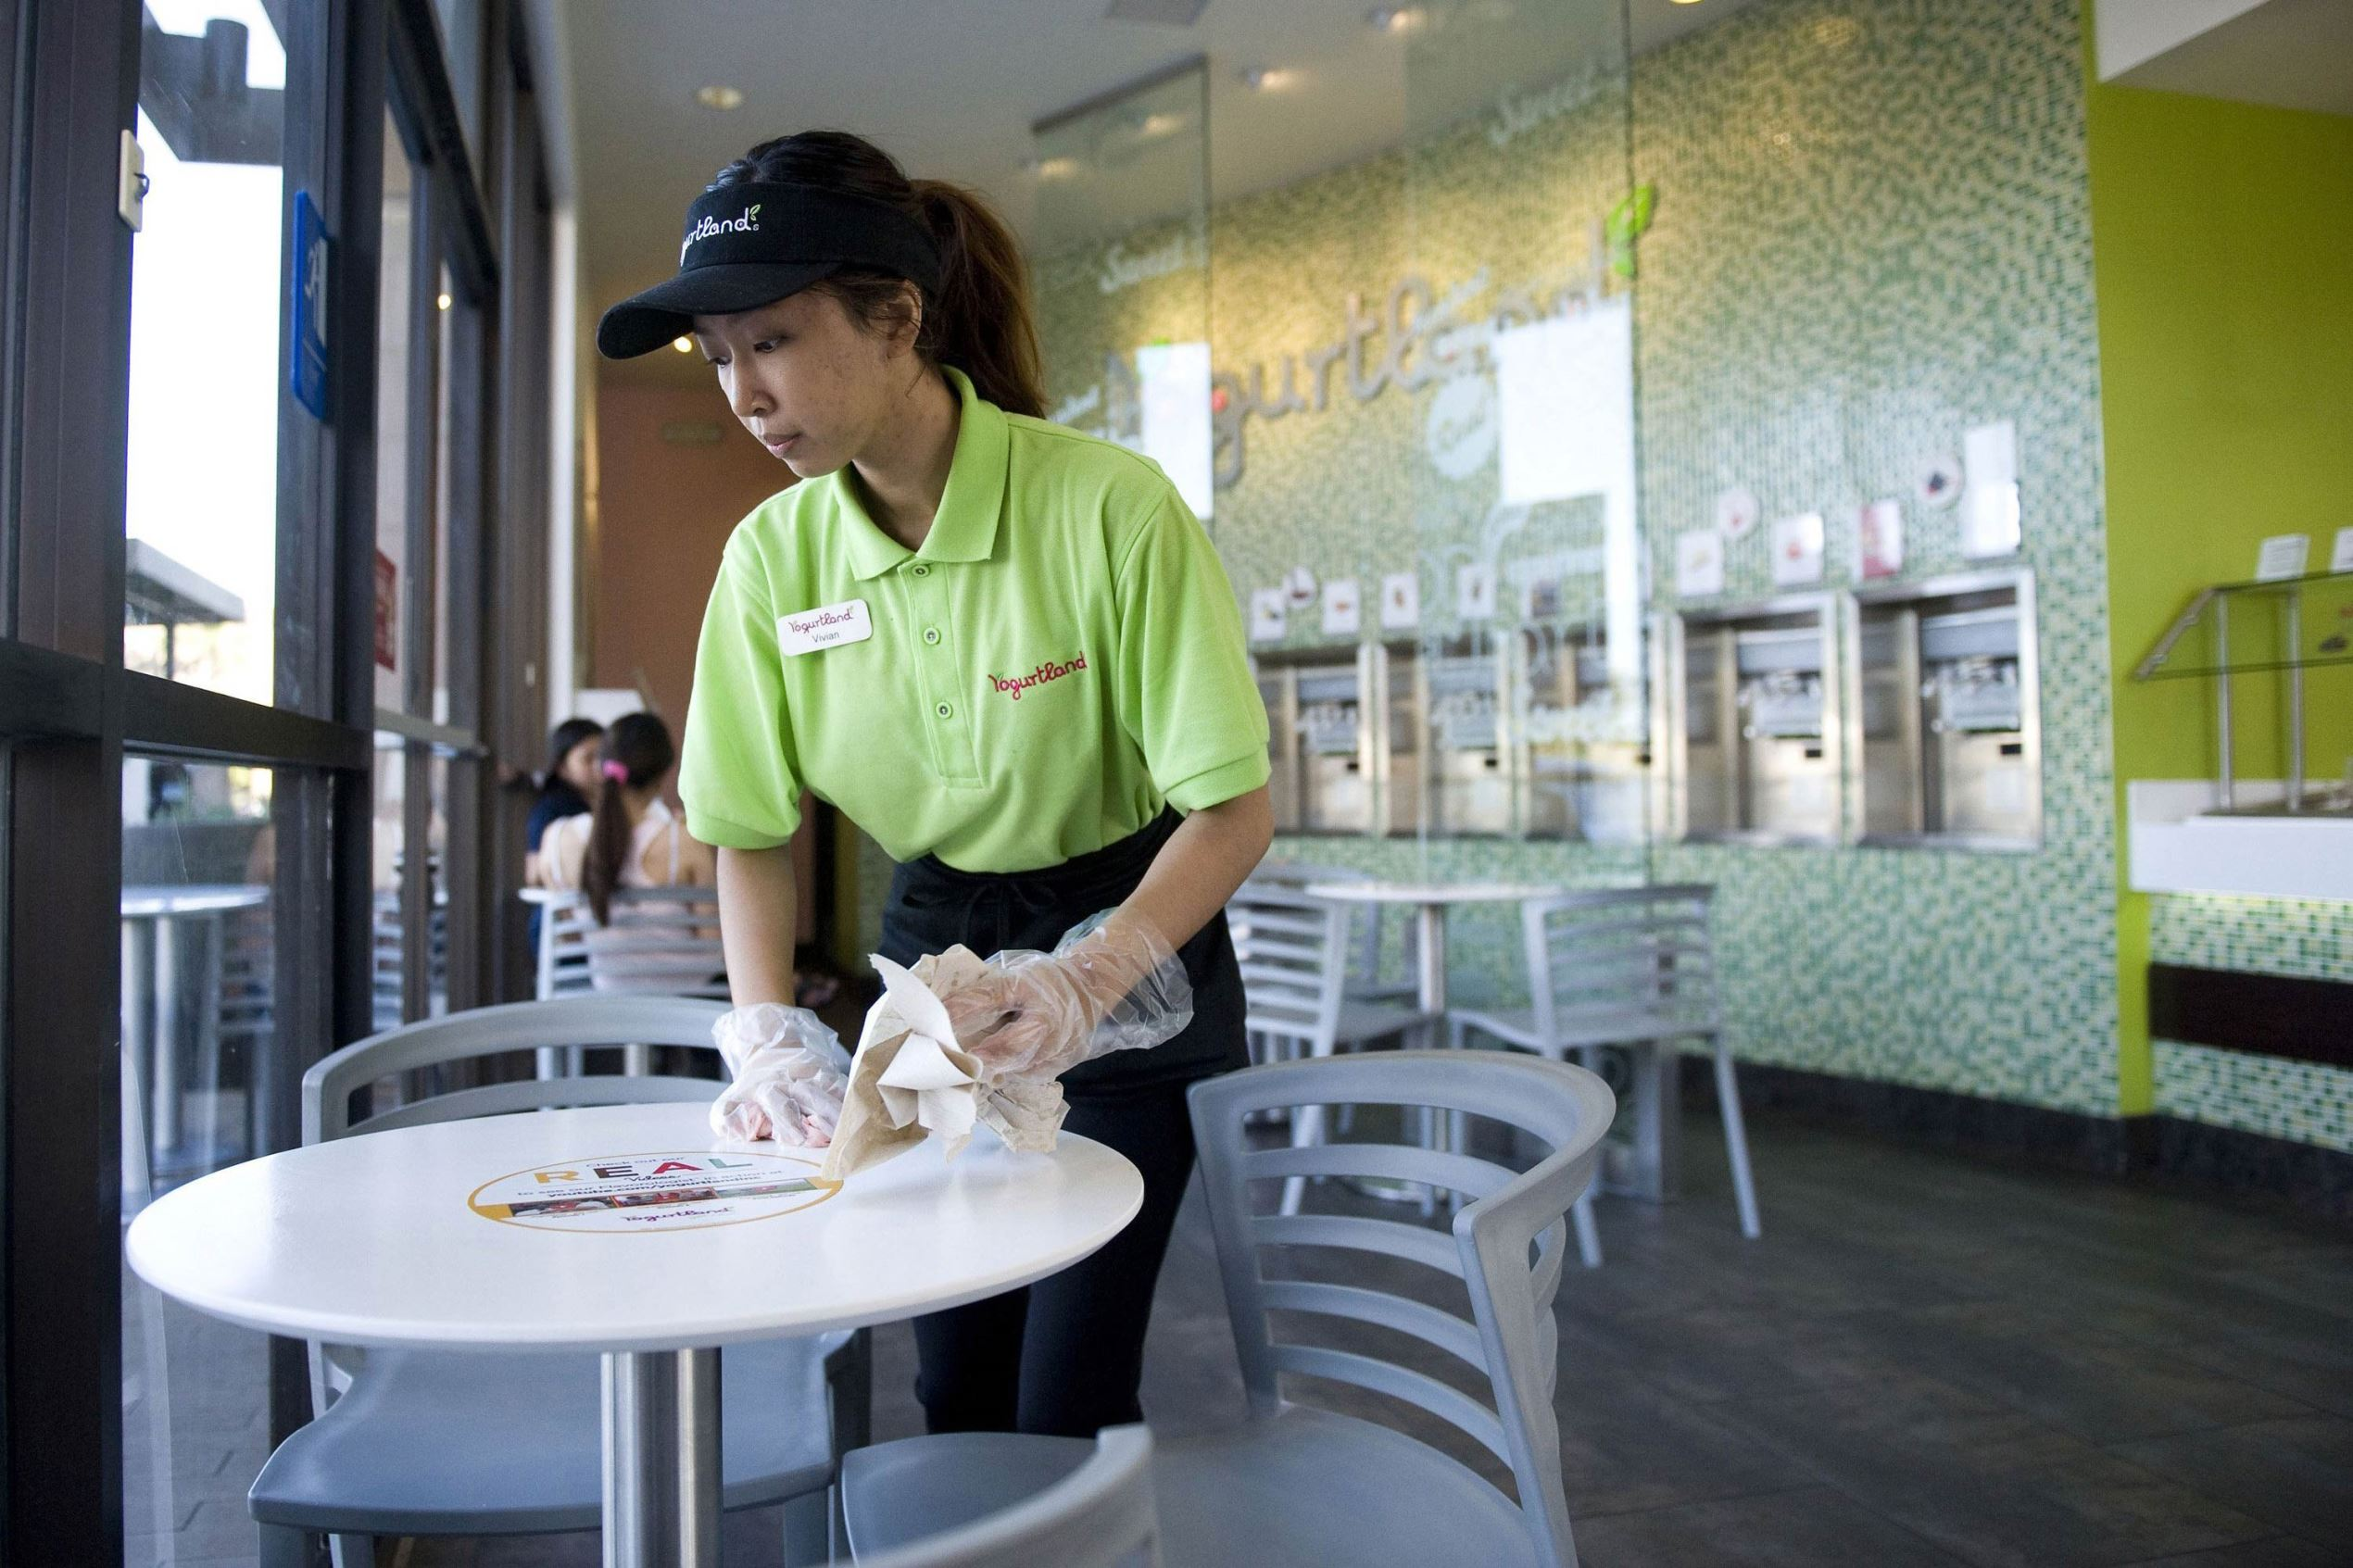 Vivian Pham, 20, wipes down tables during her summer job as an associate at Yogurtland in Huntington Beach, Calif. Pham is a second-year student at Golden West College.